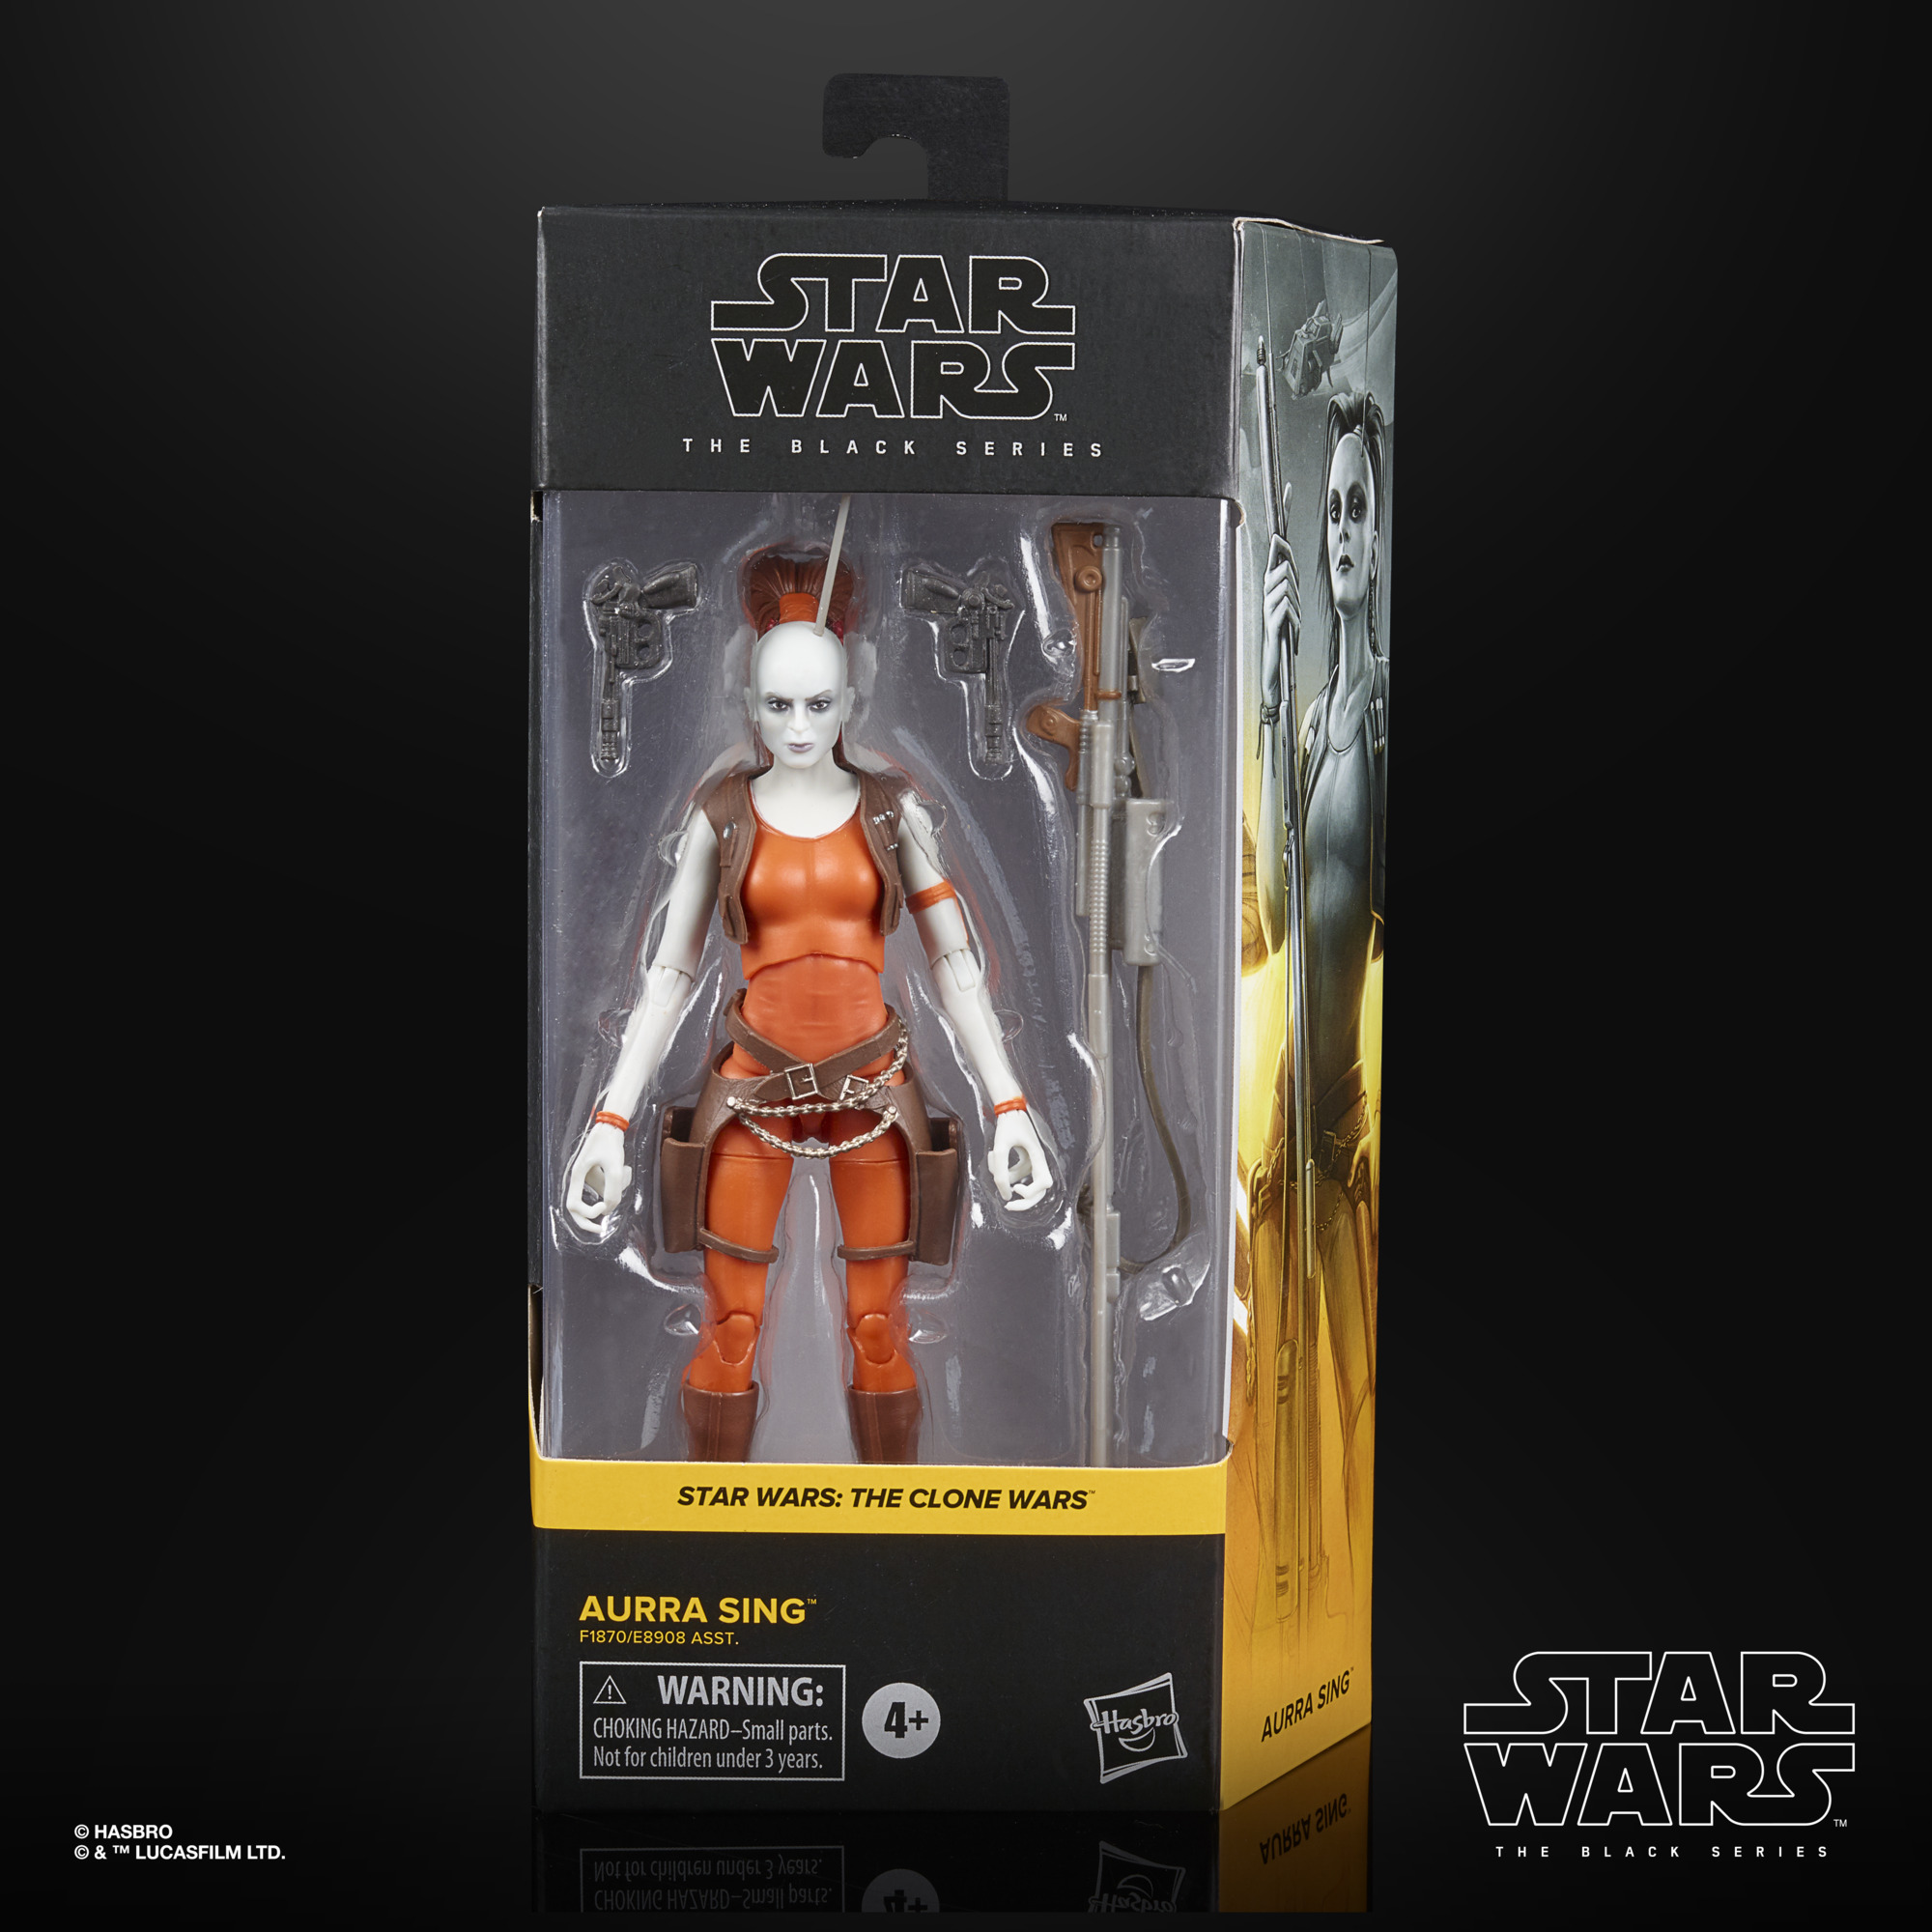 Star Wars The Black Series Aurra Sing 15cm F1870 5010993828029